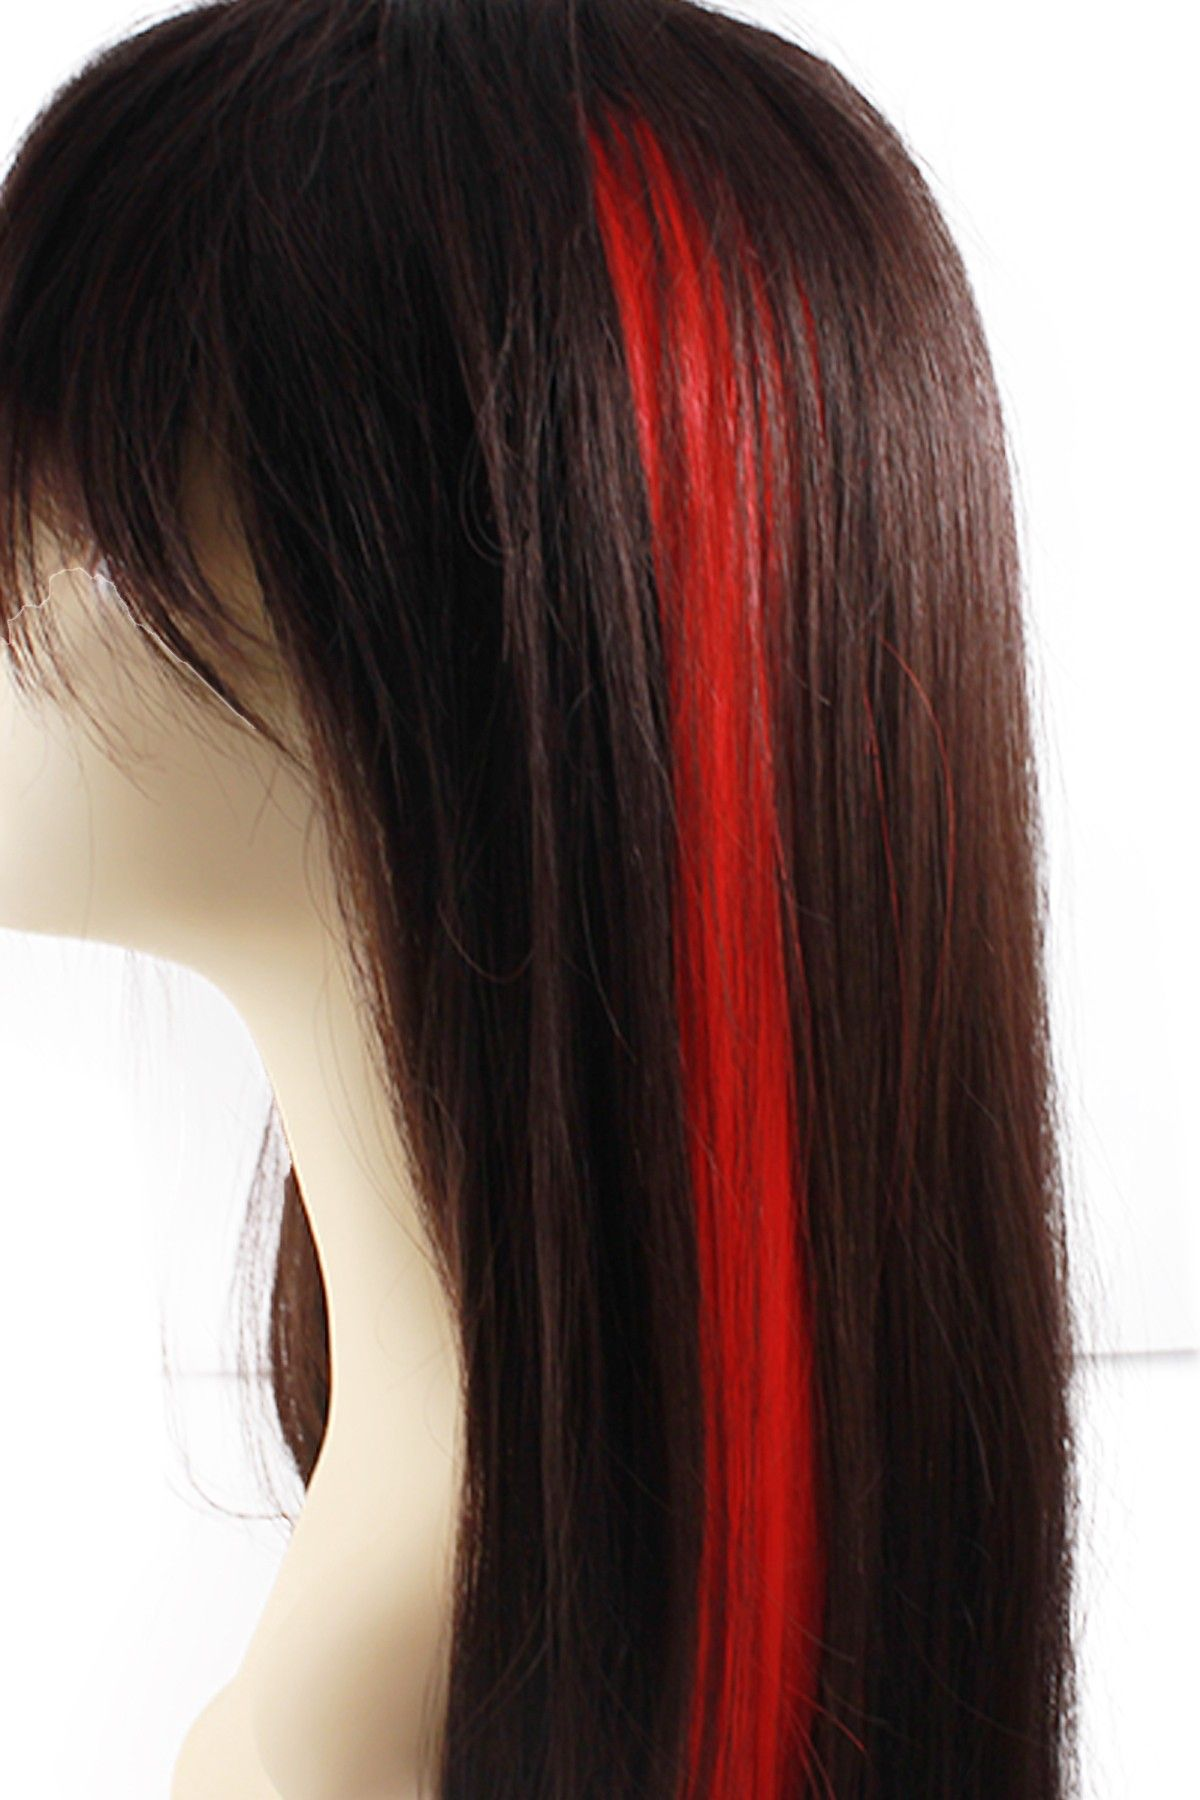 On Hautelook Celebrity Strands Single Clip Hair Extension Red